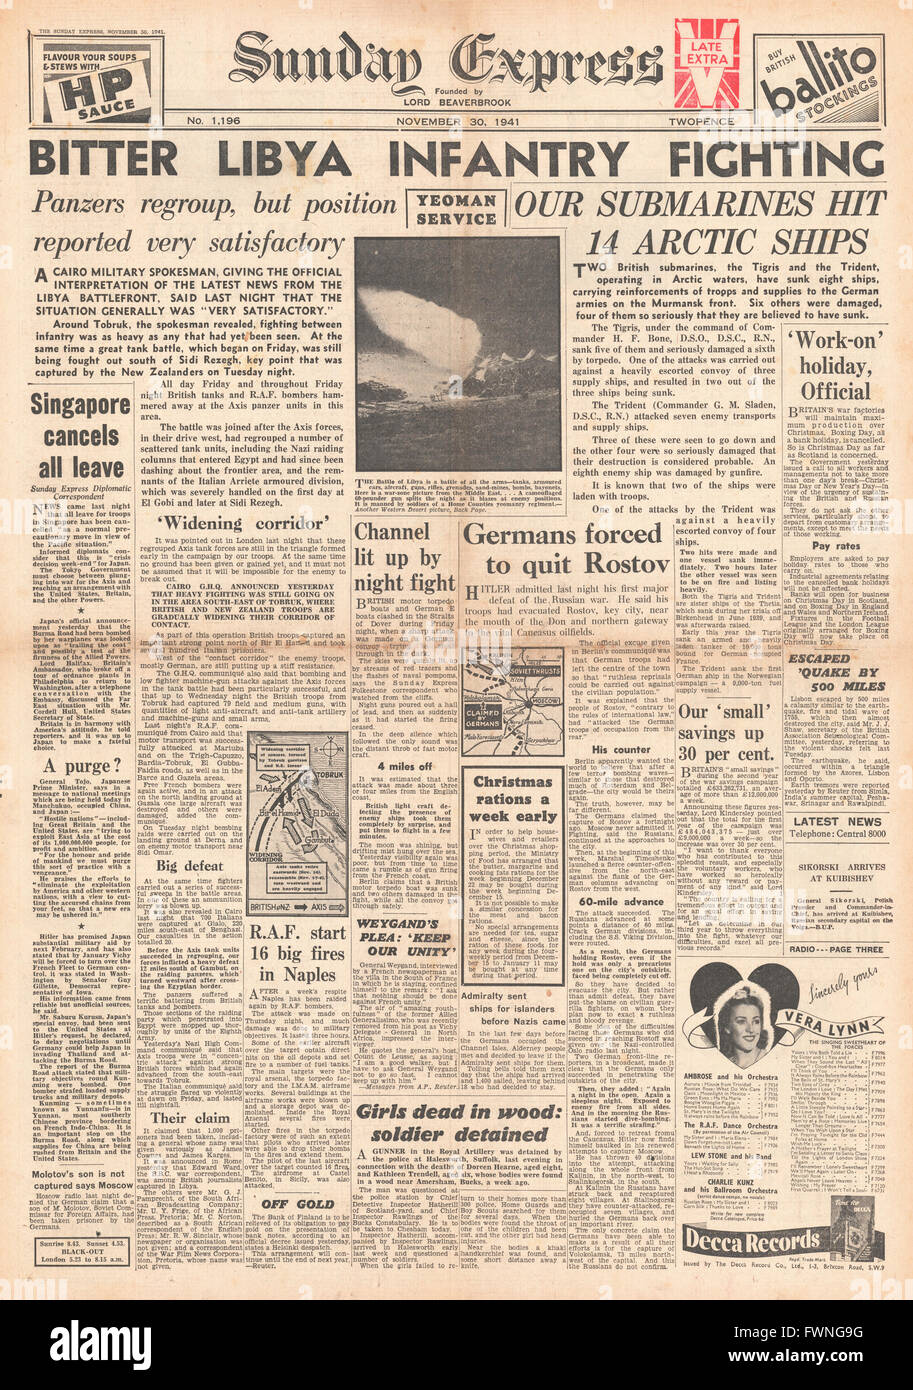 1941 front page Sunday Express Battle for Libya and Royal Navy Submarines protect Arctic convoys - Stock Image